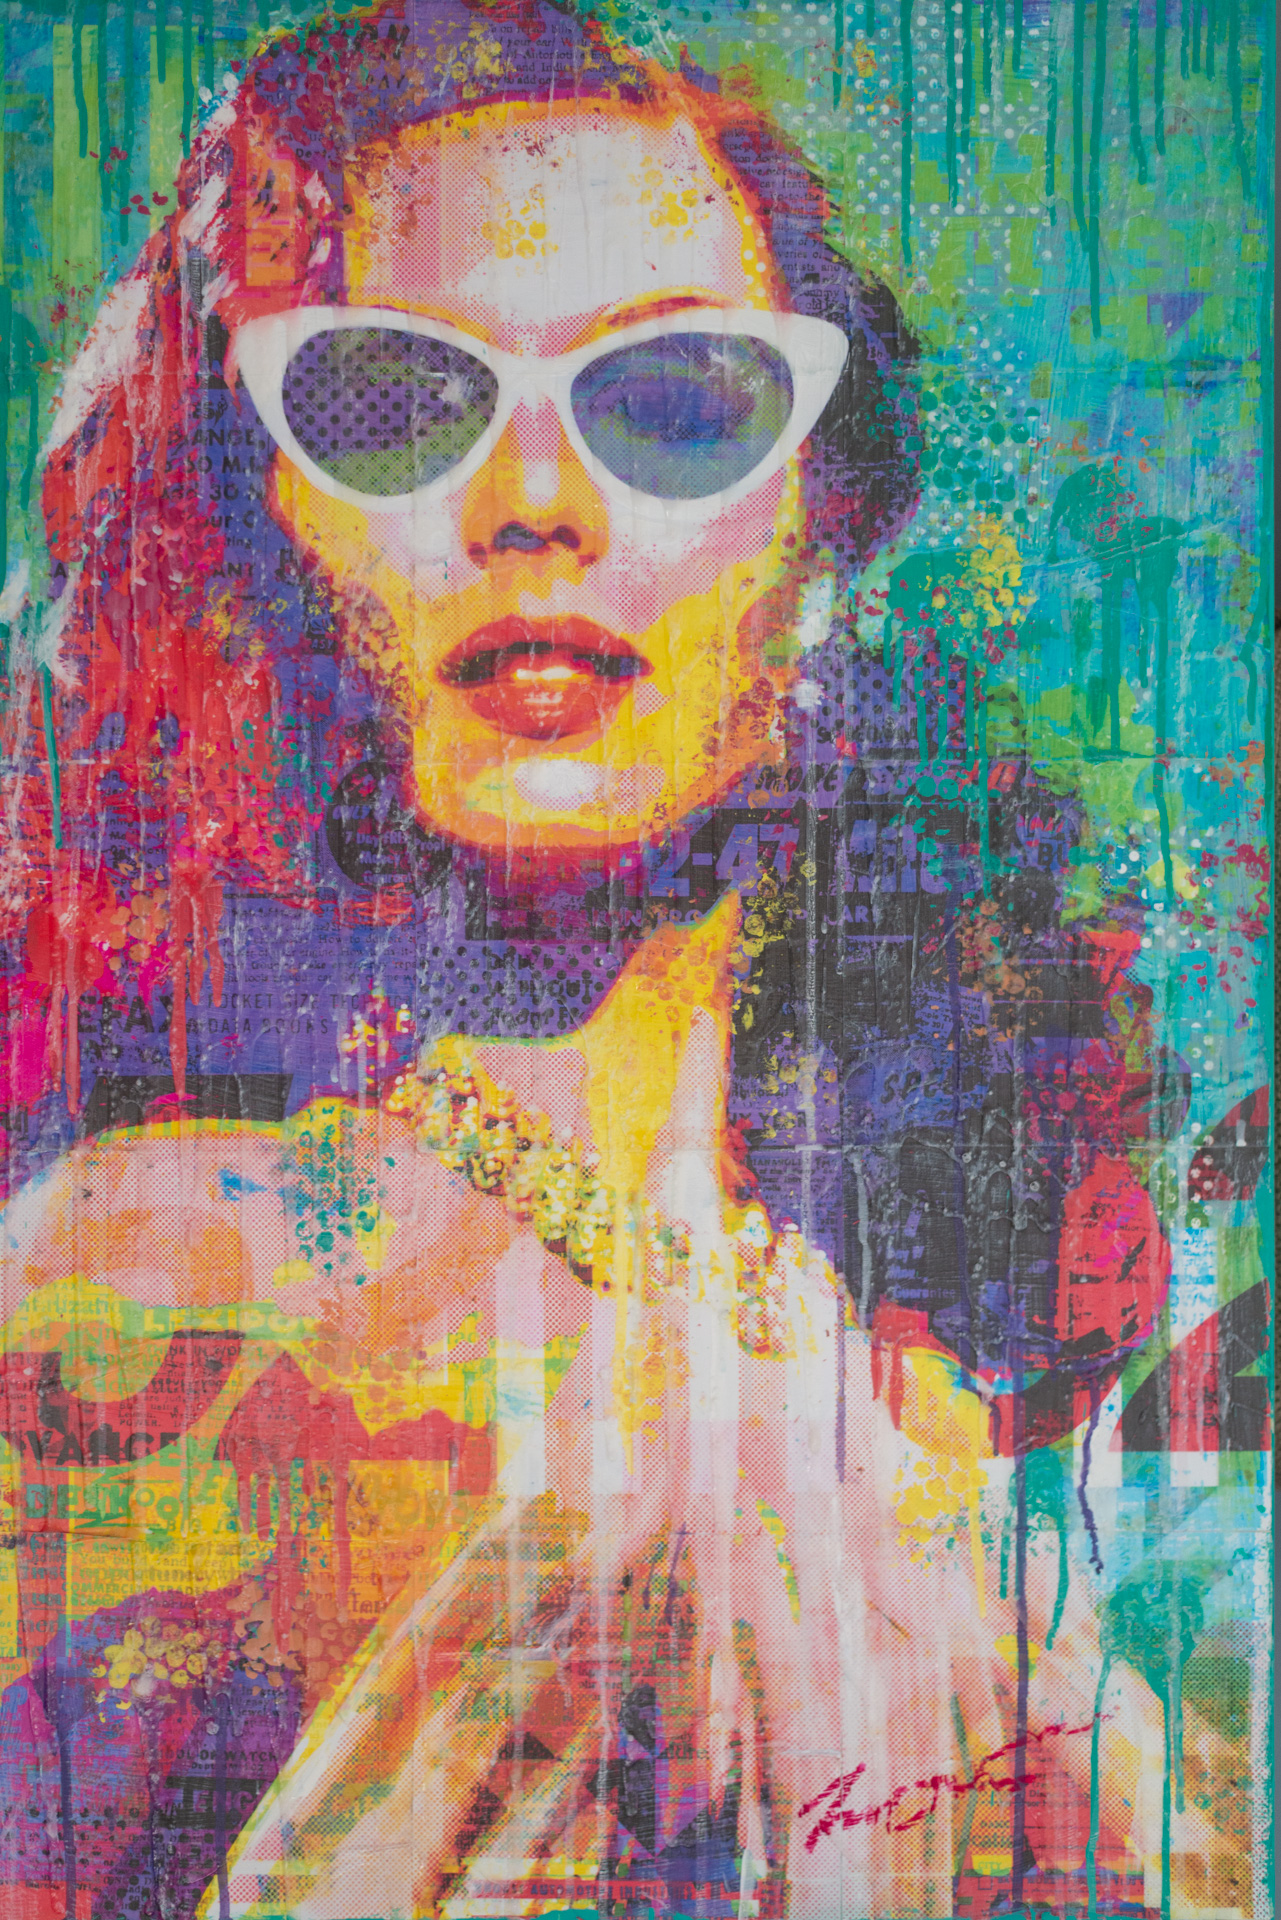 Sunglasses And Pearls 36x24